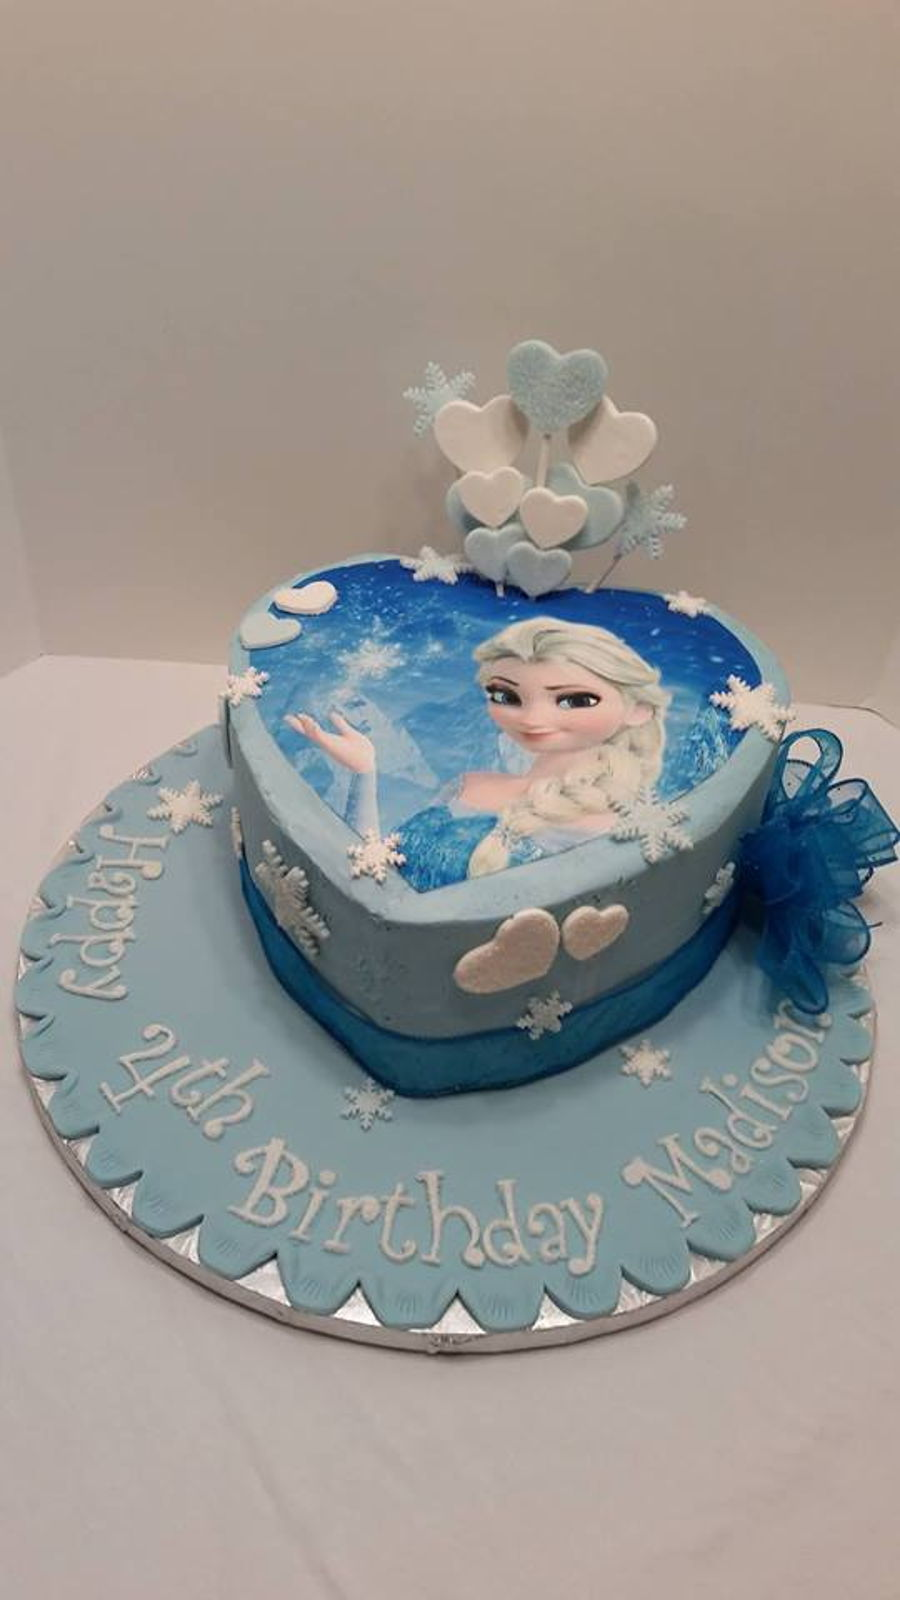 We Love Elsa on Cake Central